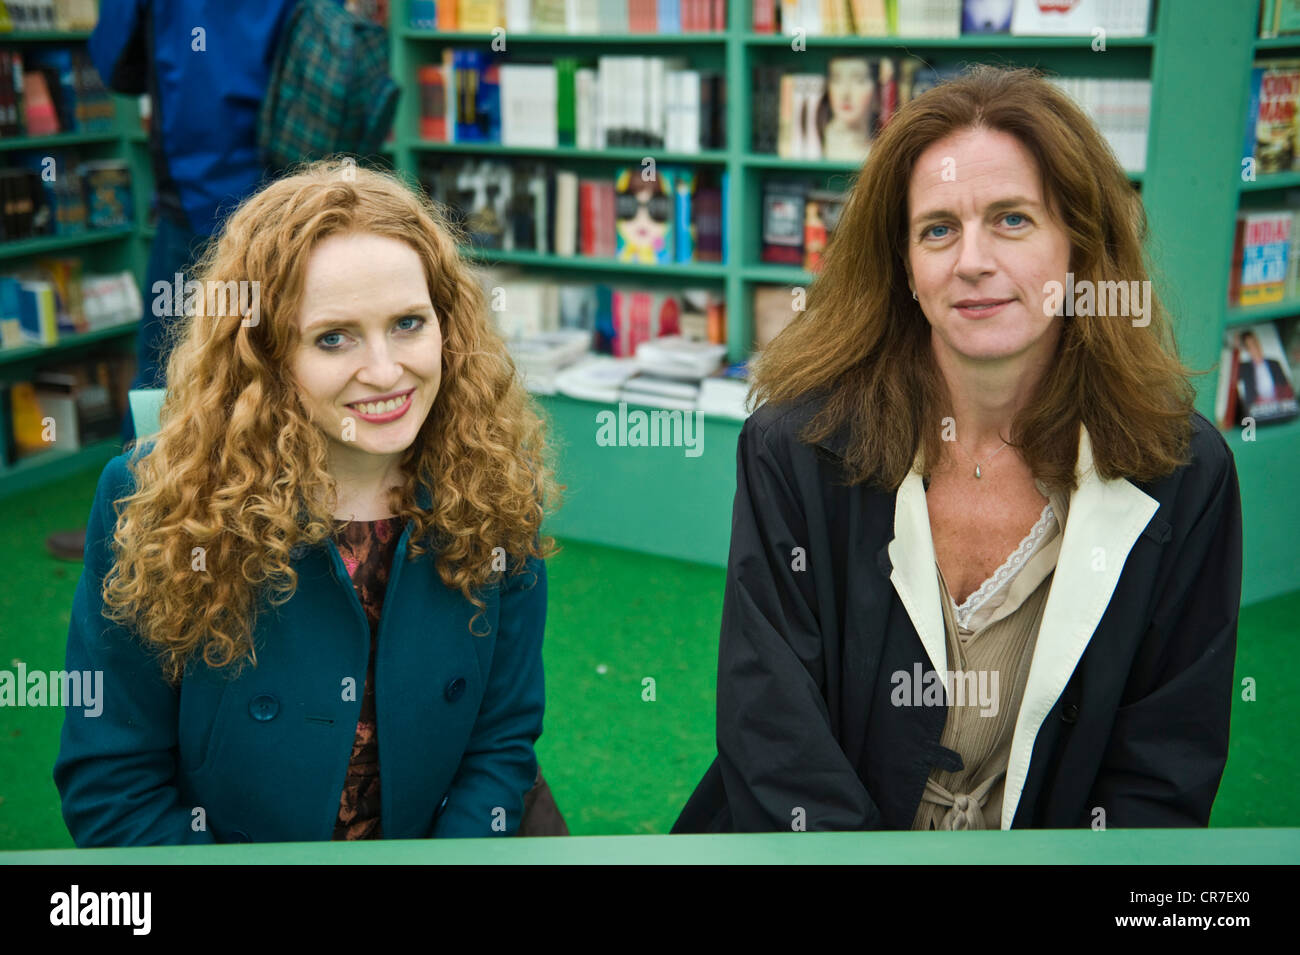 Kate Williams & Clare Clark, English authors pictured at The Telegraph Hay Festival 2012, Hay-on-Wye, Powys, - Stock Image